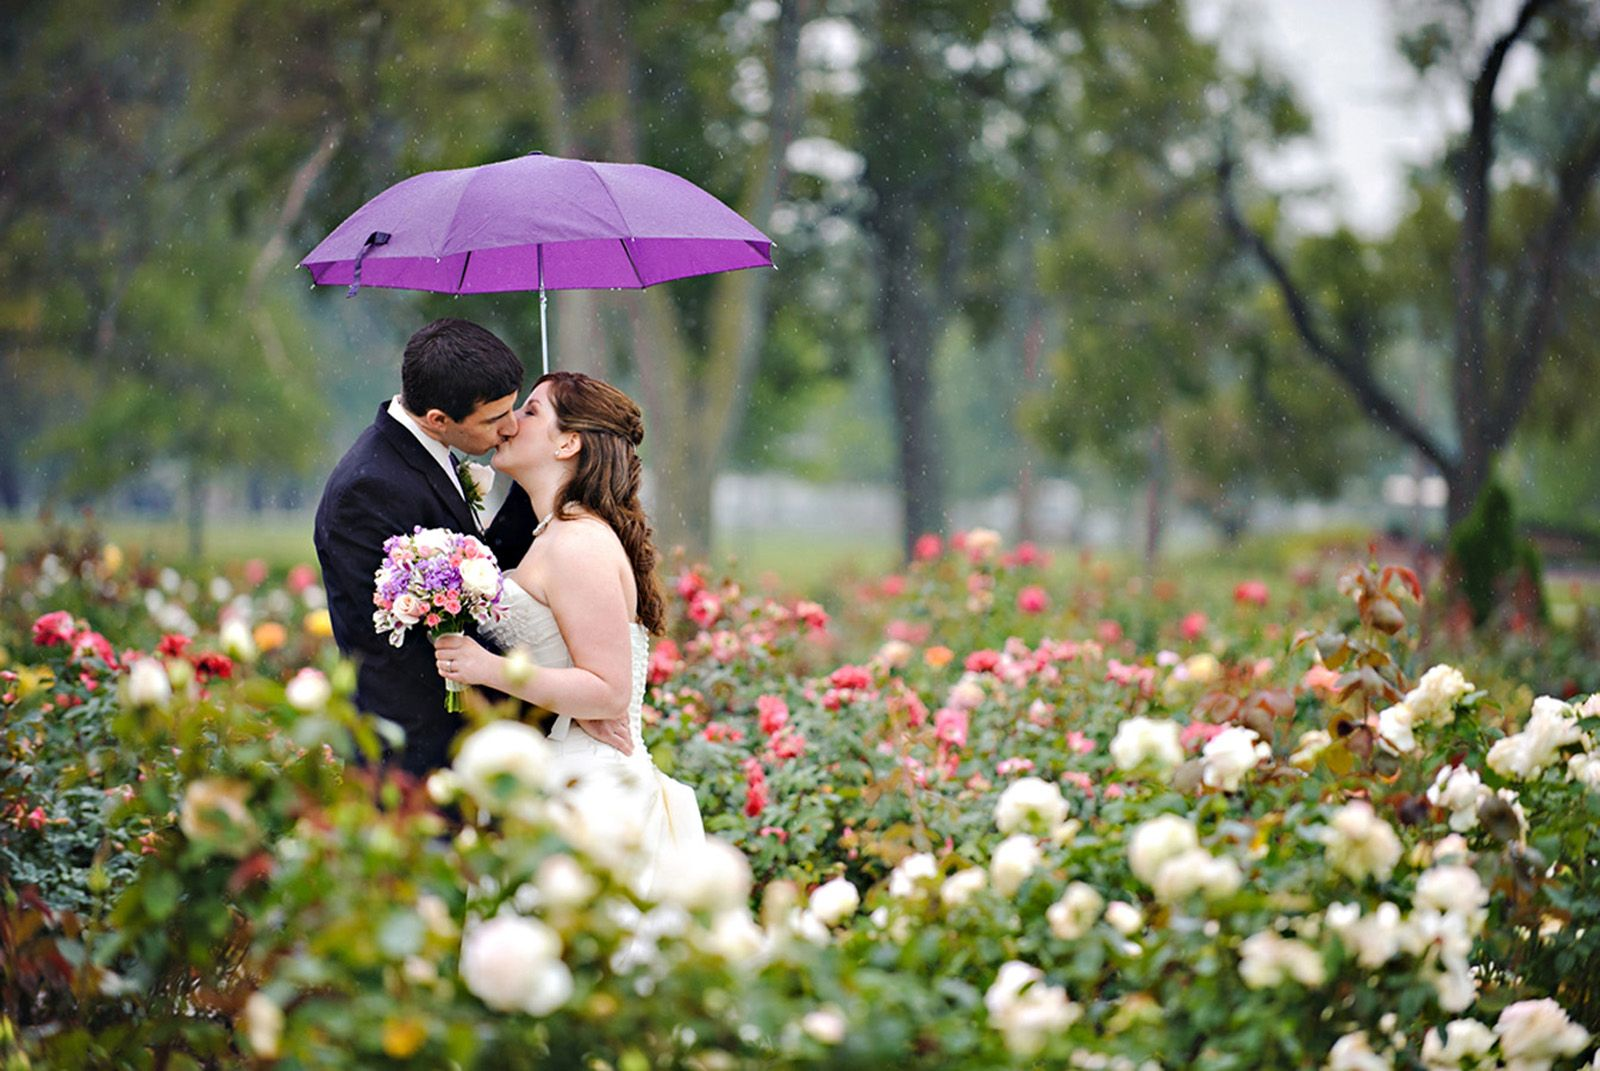 Rainy Wedding in Lorain Ohio Rose Garden